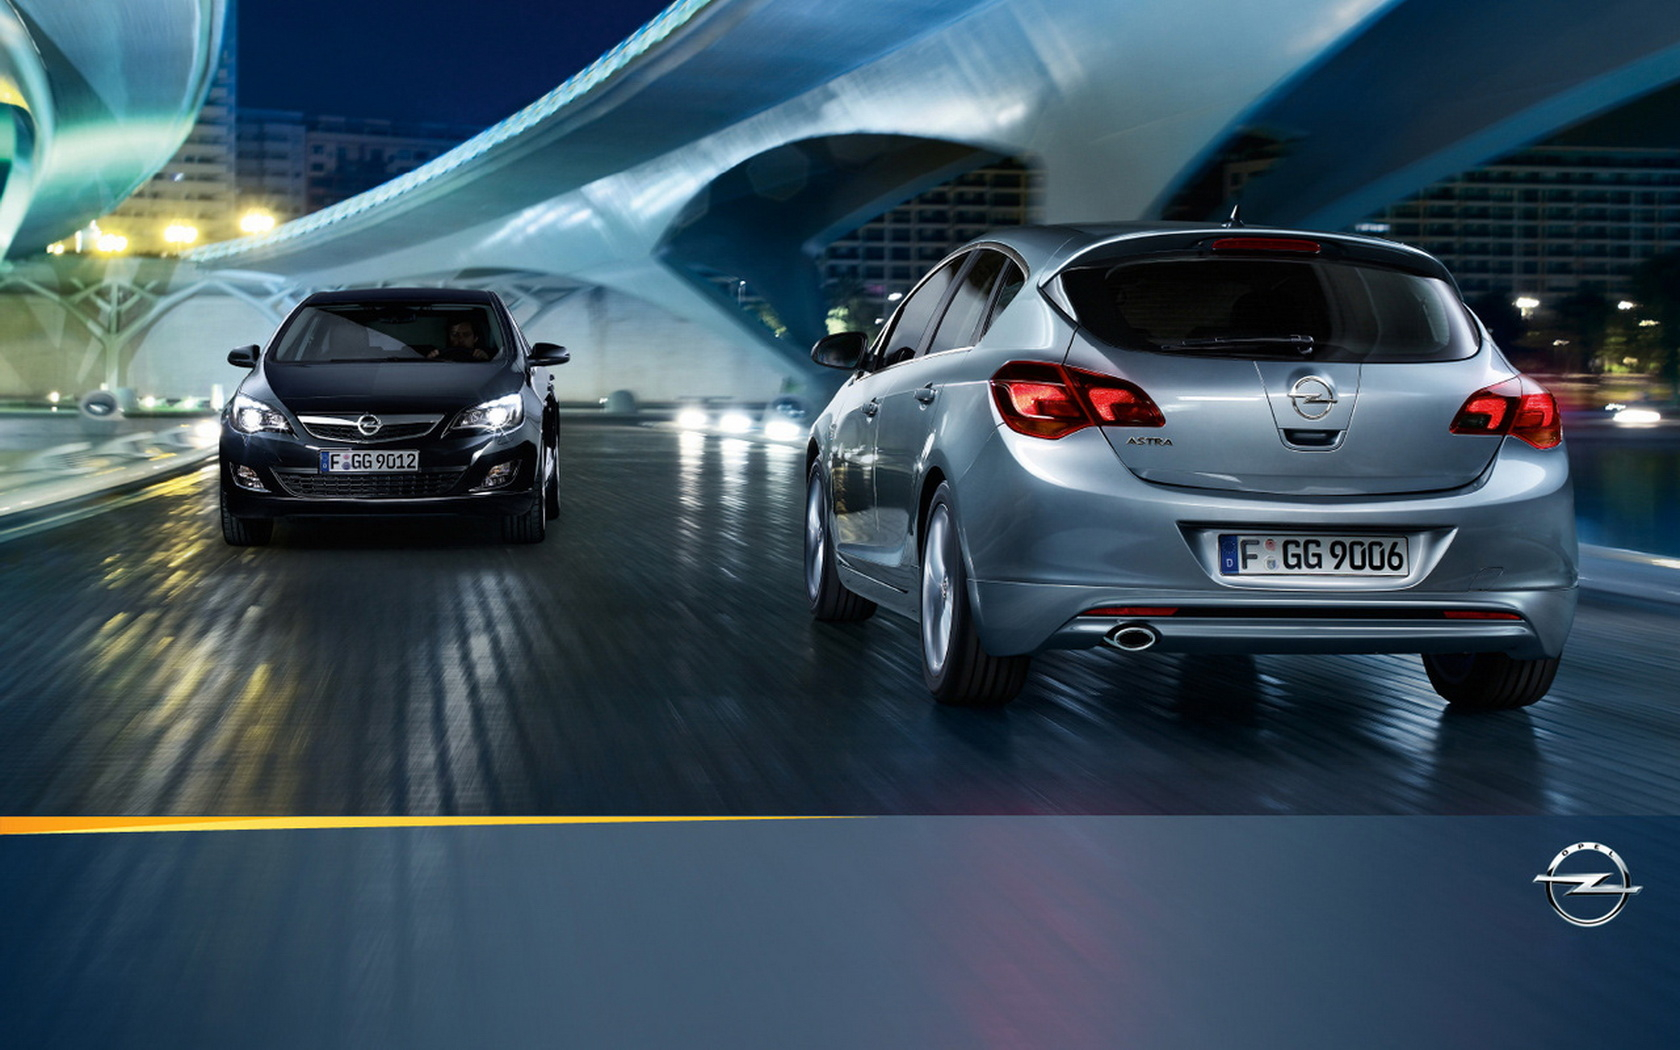 Opel Astra Wallpapers and Background Images   stmednet 1680x1050